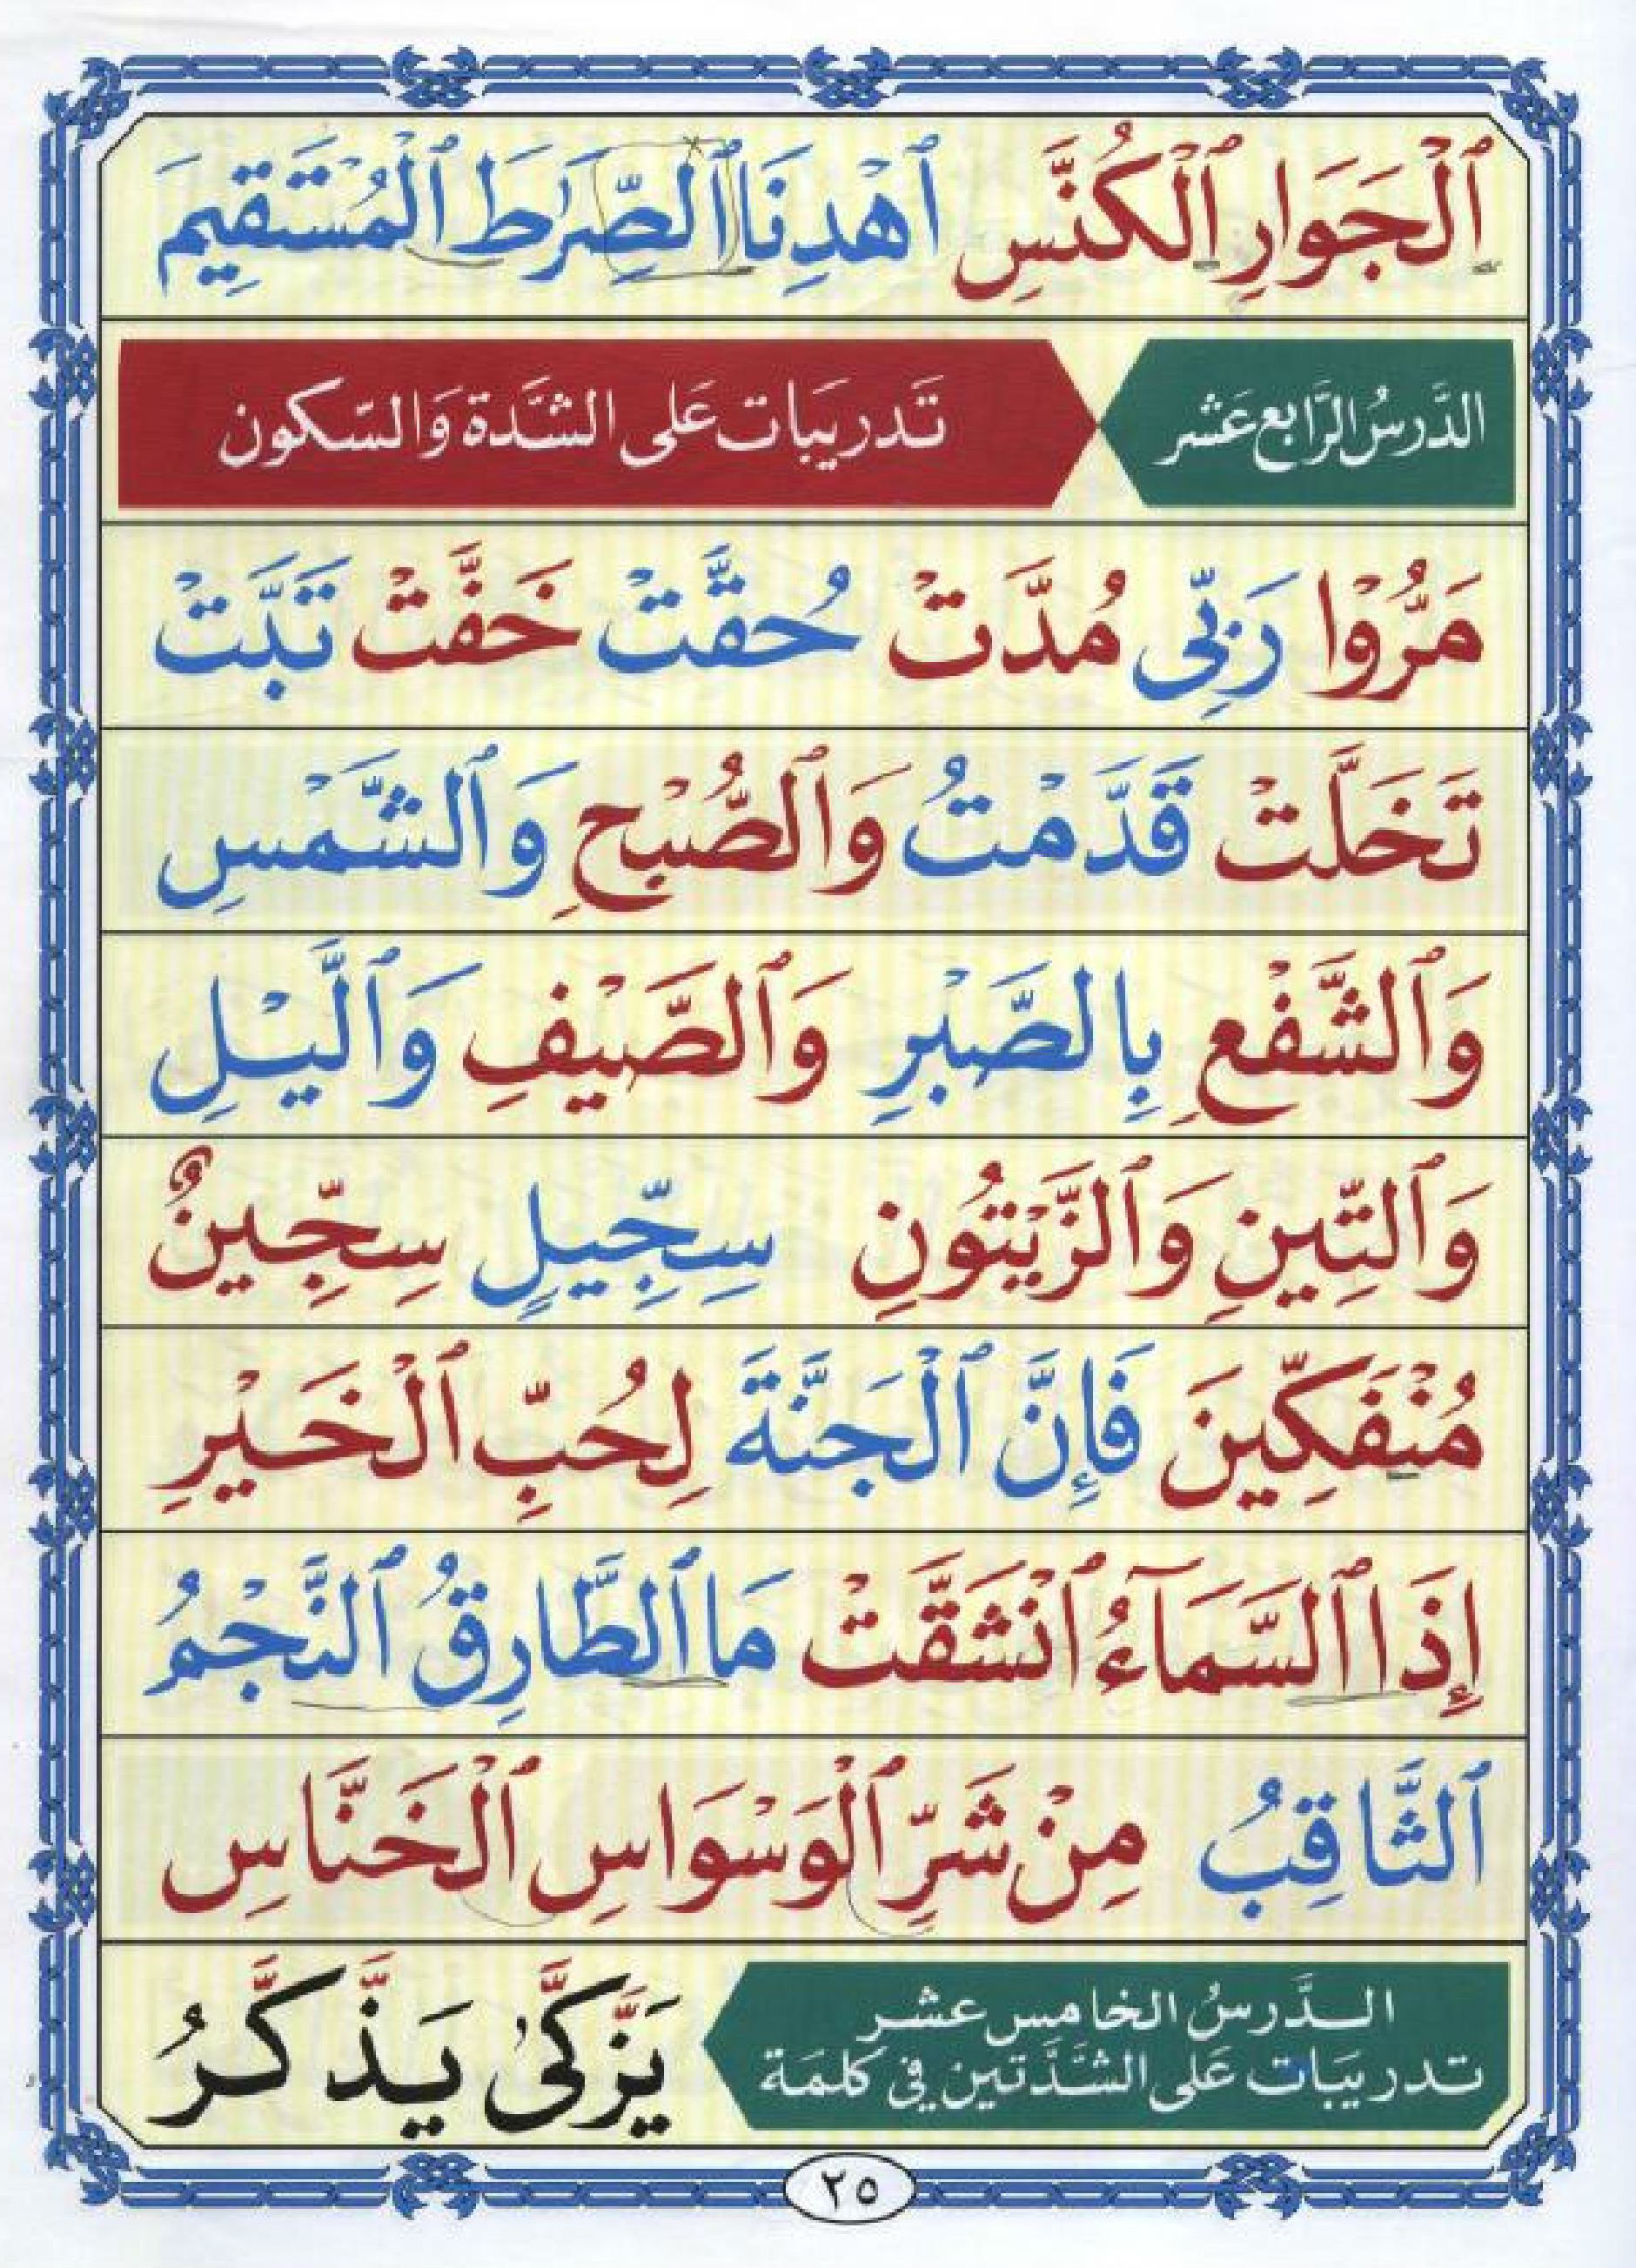 Noorani Qaida in Arabic